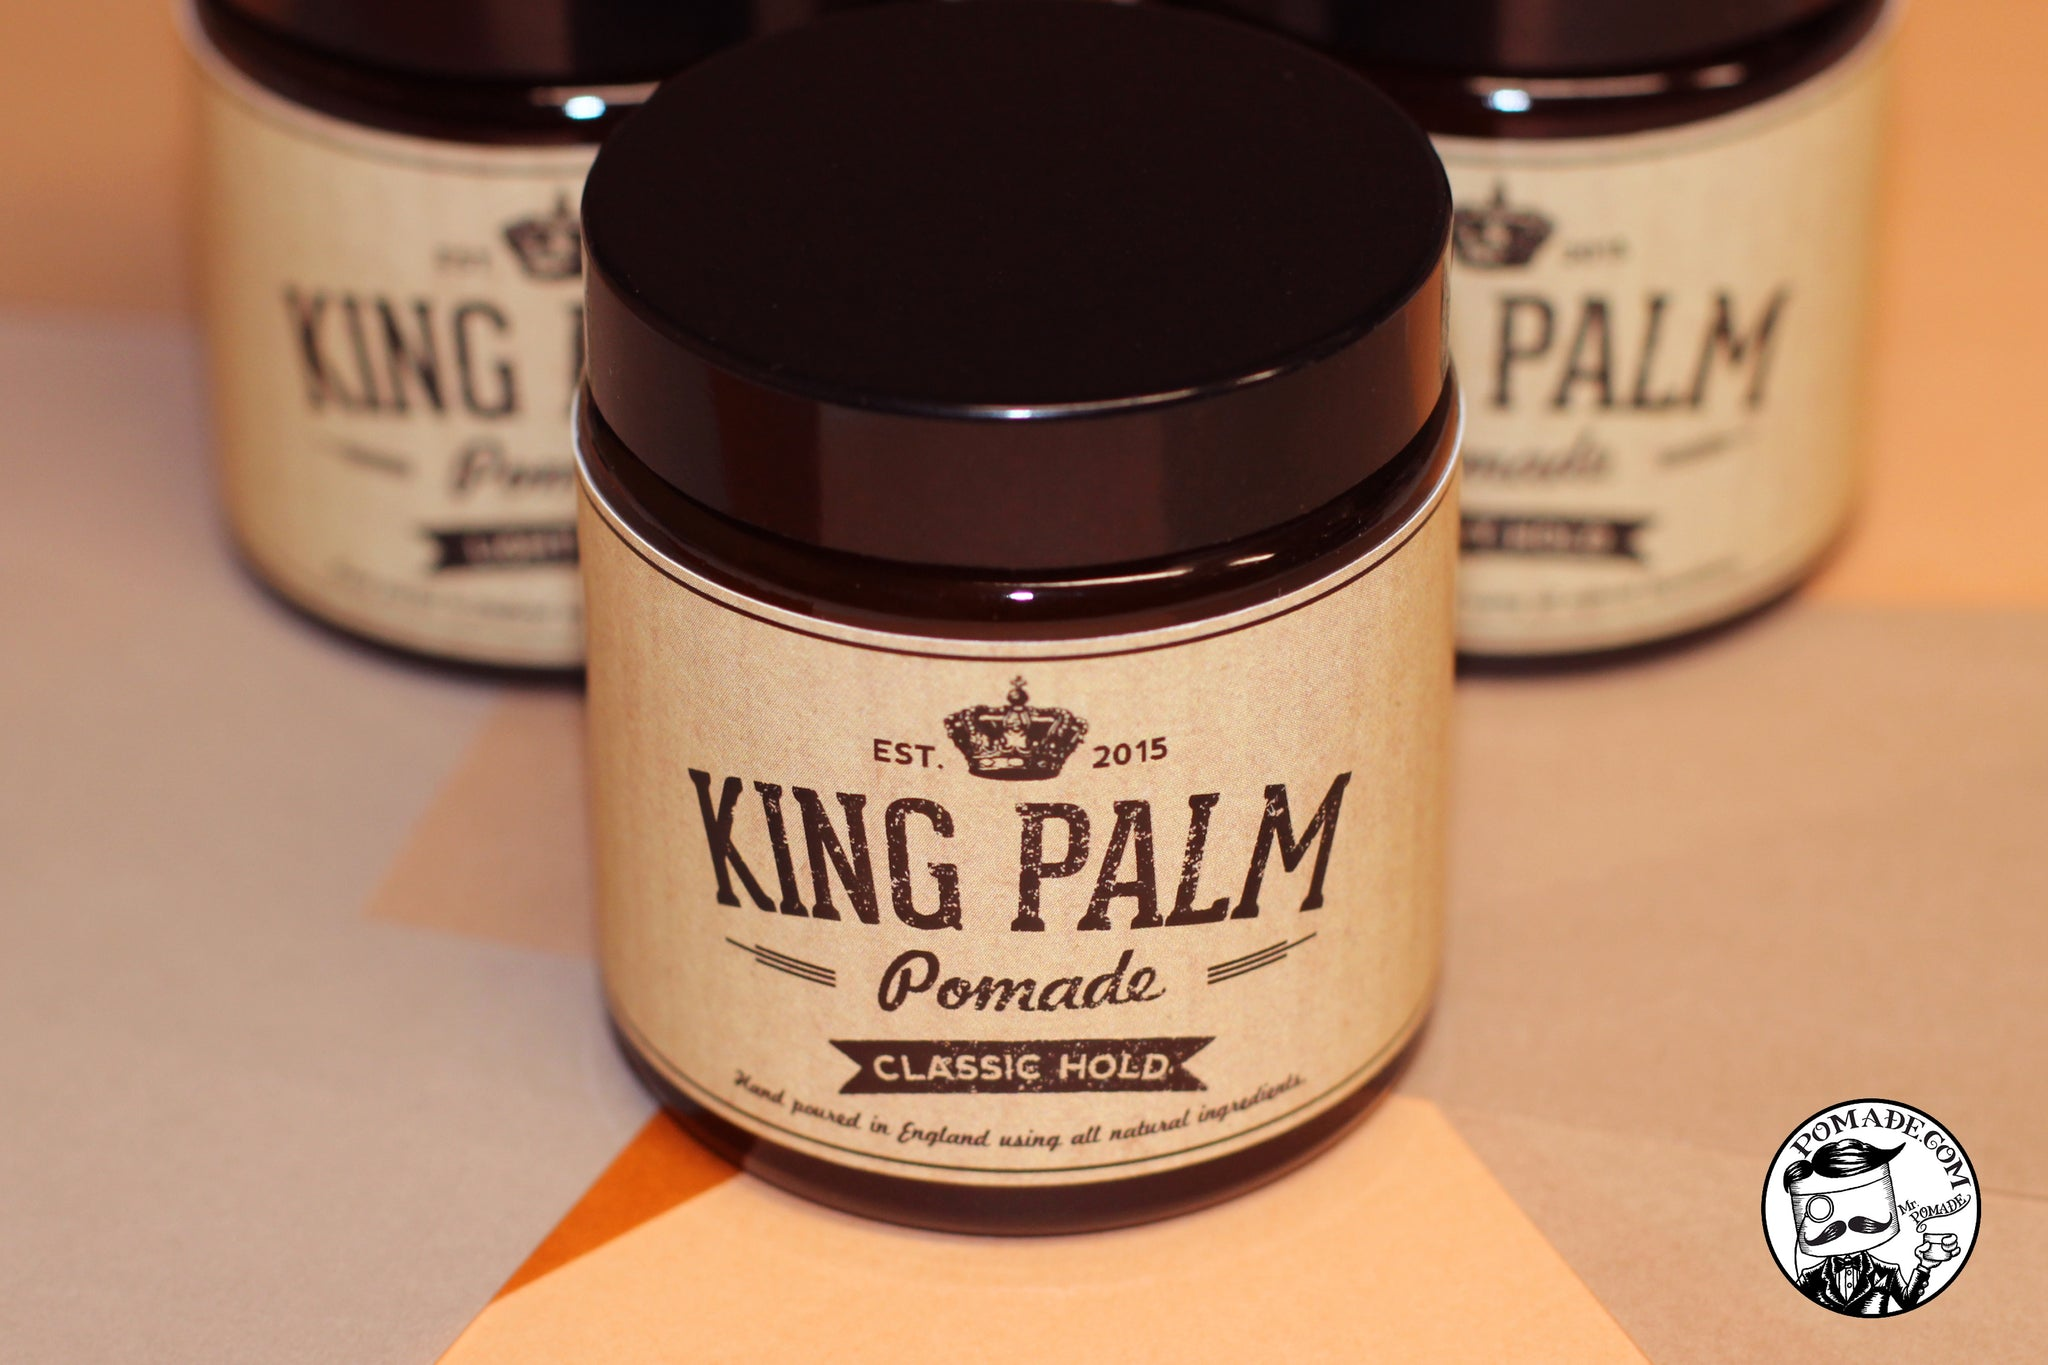 King Palm Pomade